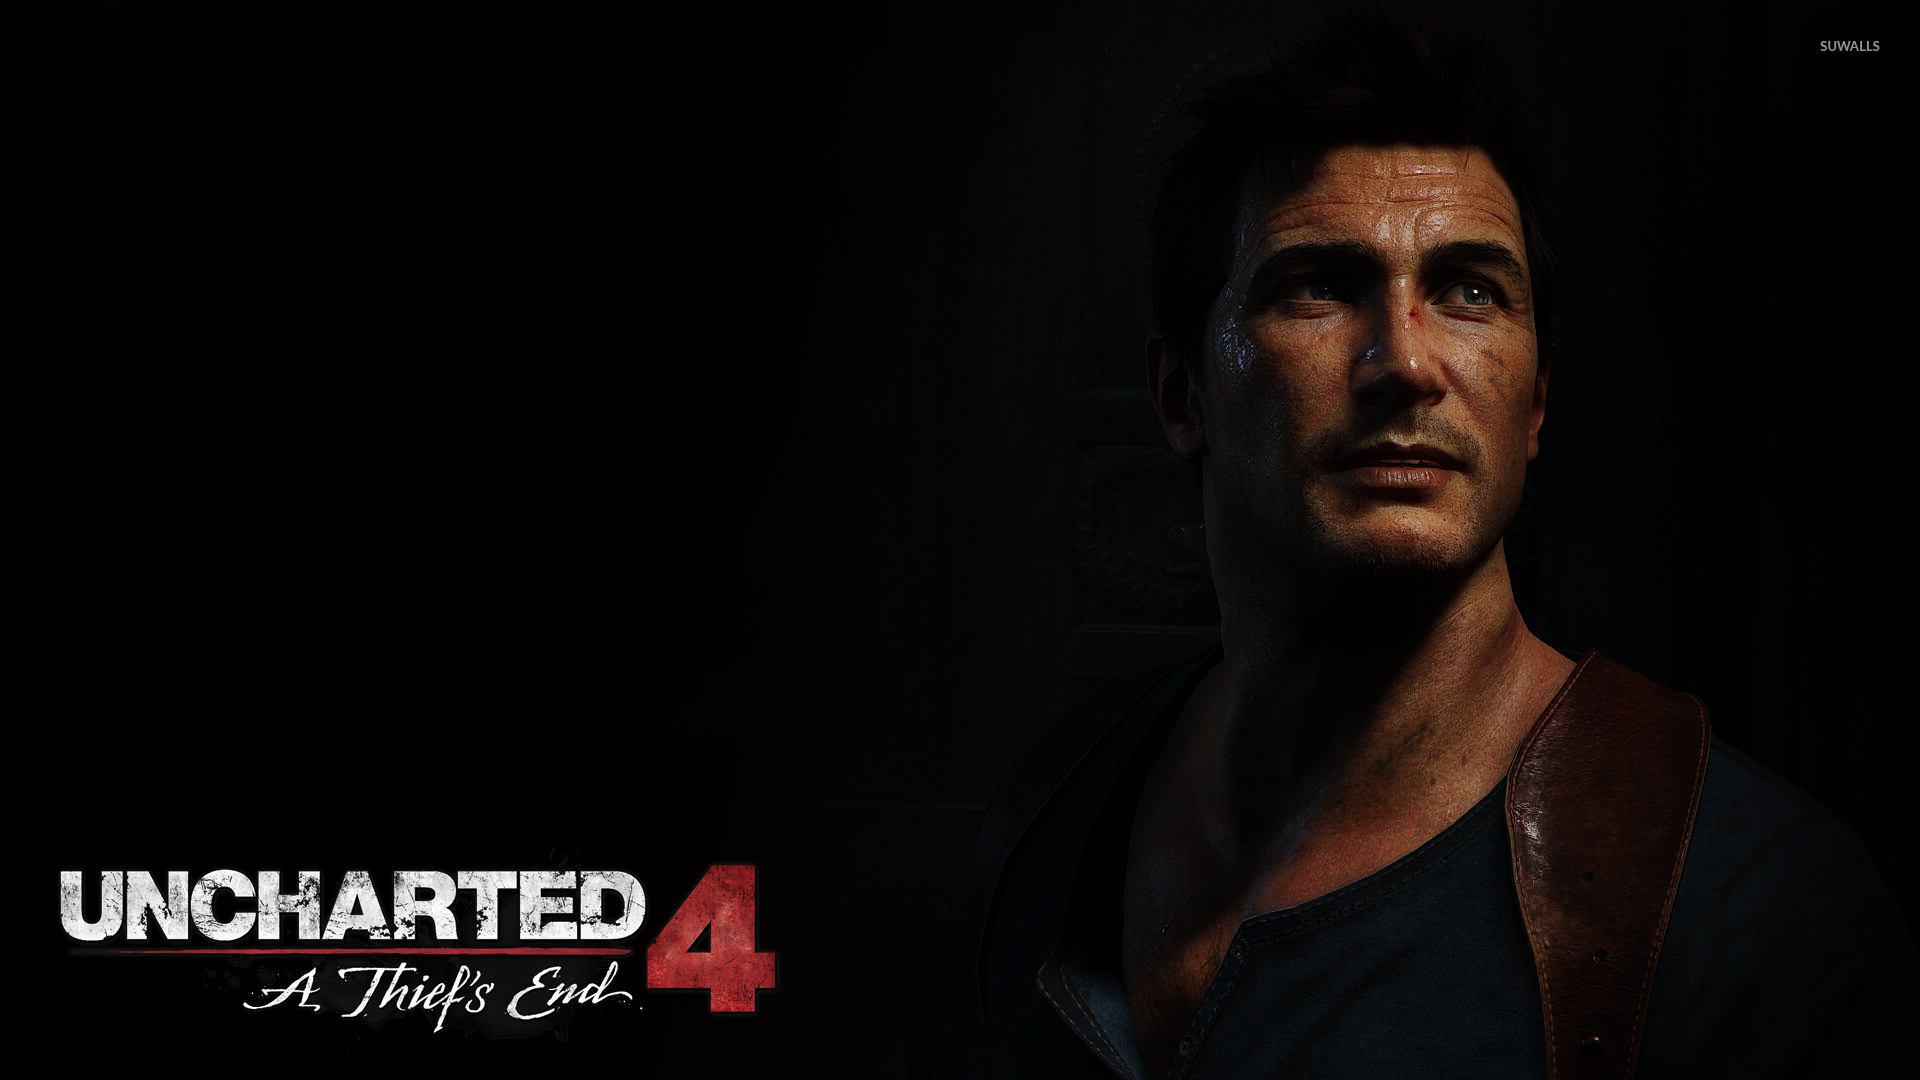 Nathan Drake In Uncharted 4 A Thief S End Wallpaper Game